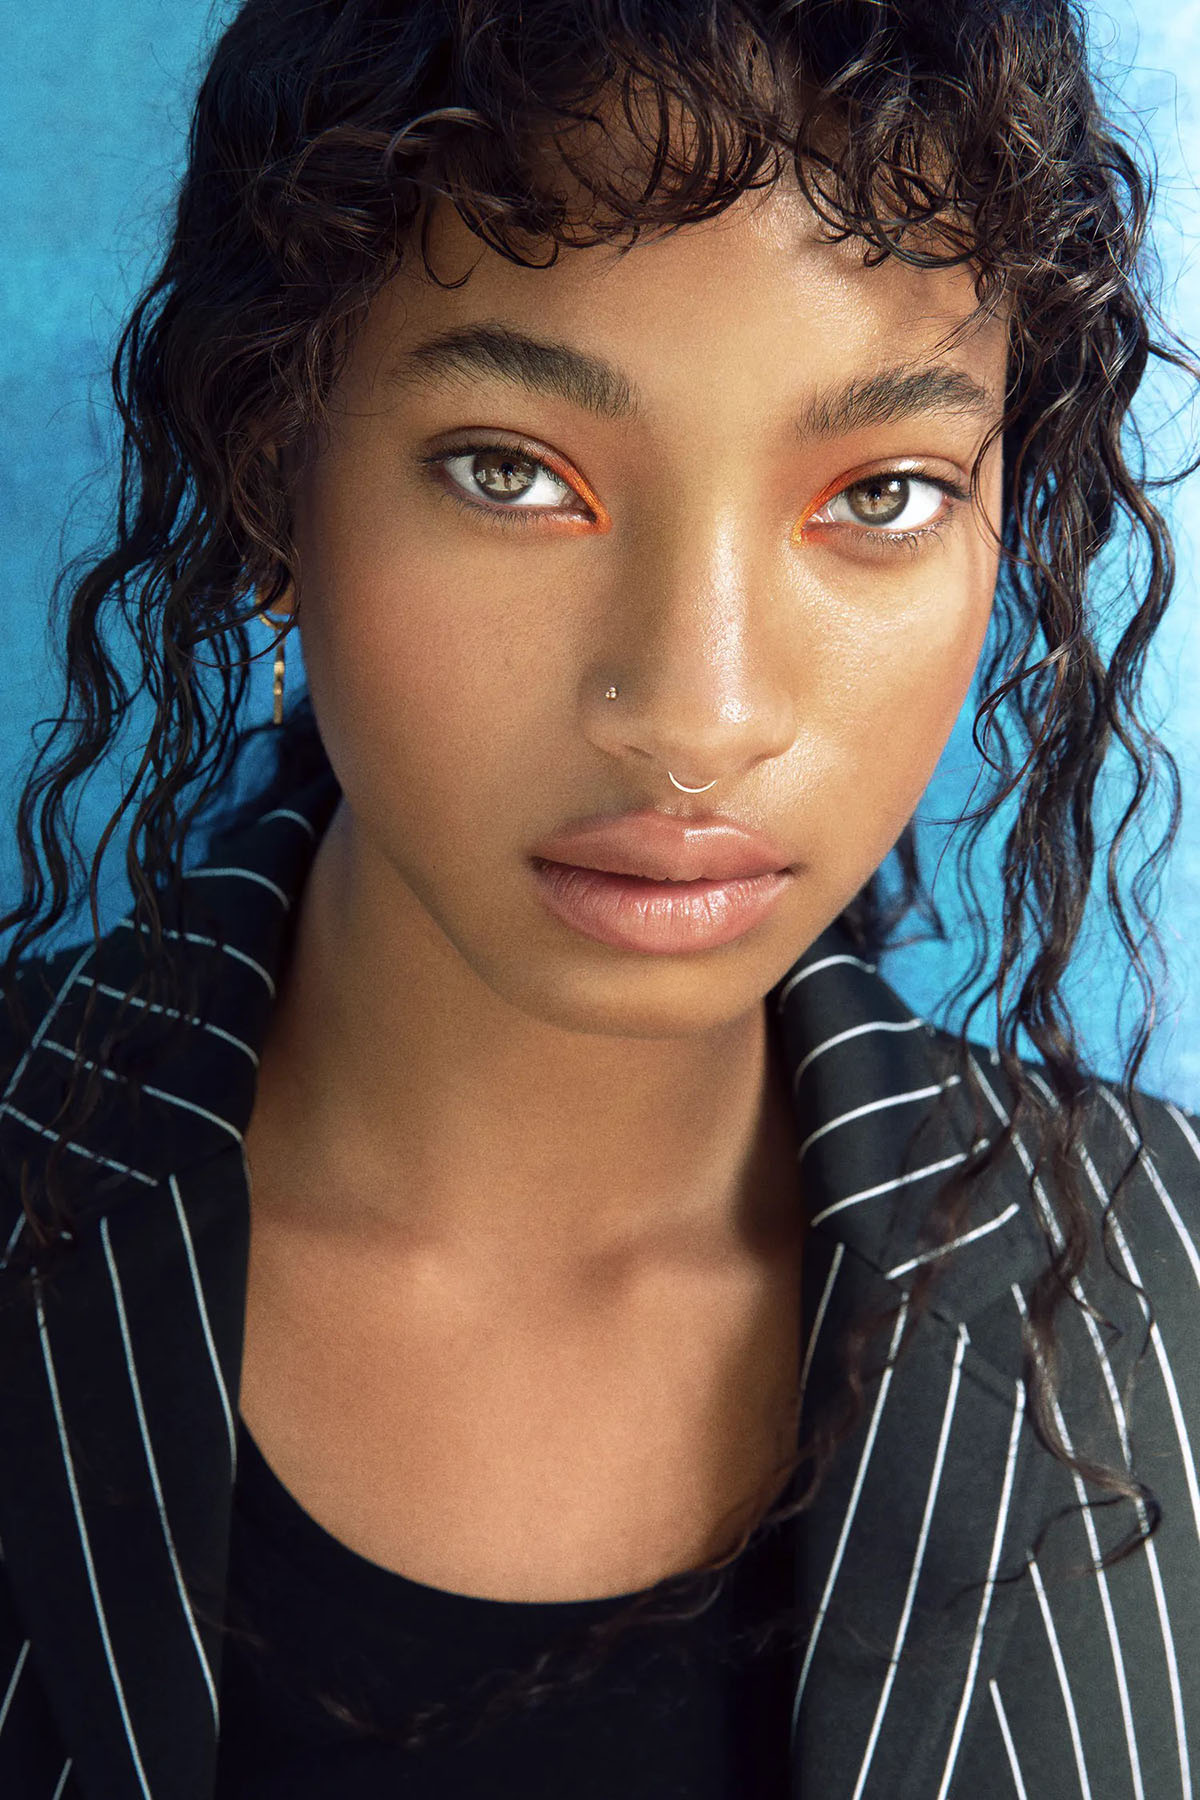 Willow Smith covers L'Officiel USA July 2021 and L'Officiel Italia Issue 38 by Myles Loftin